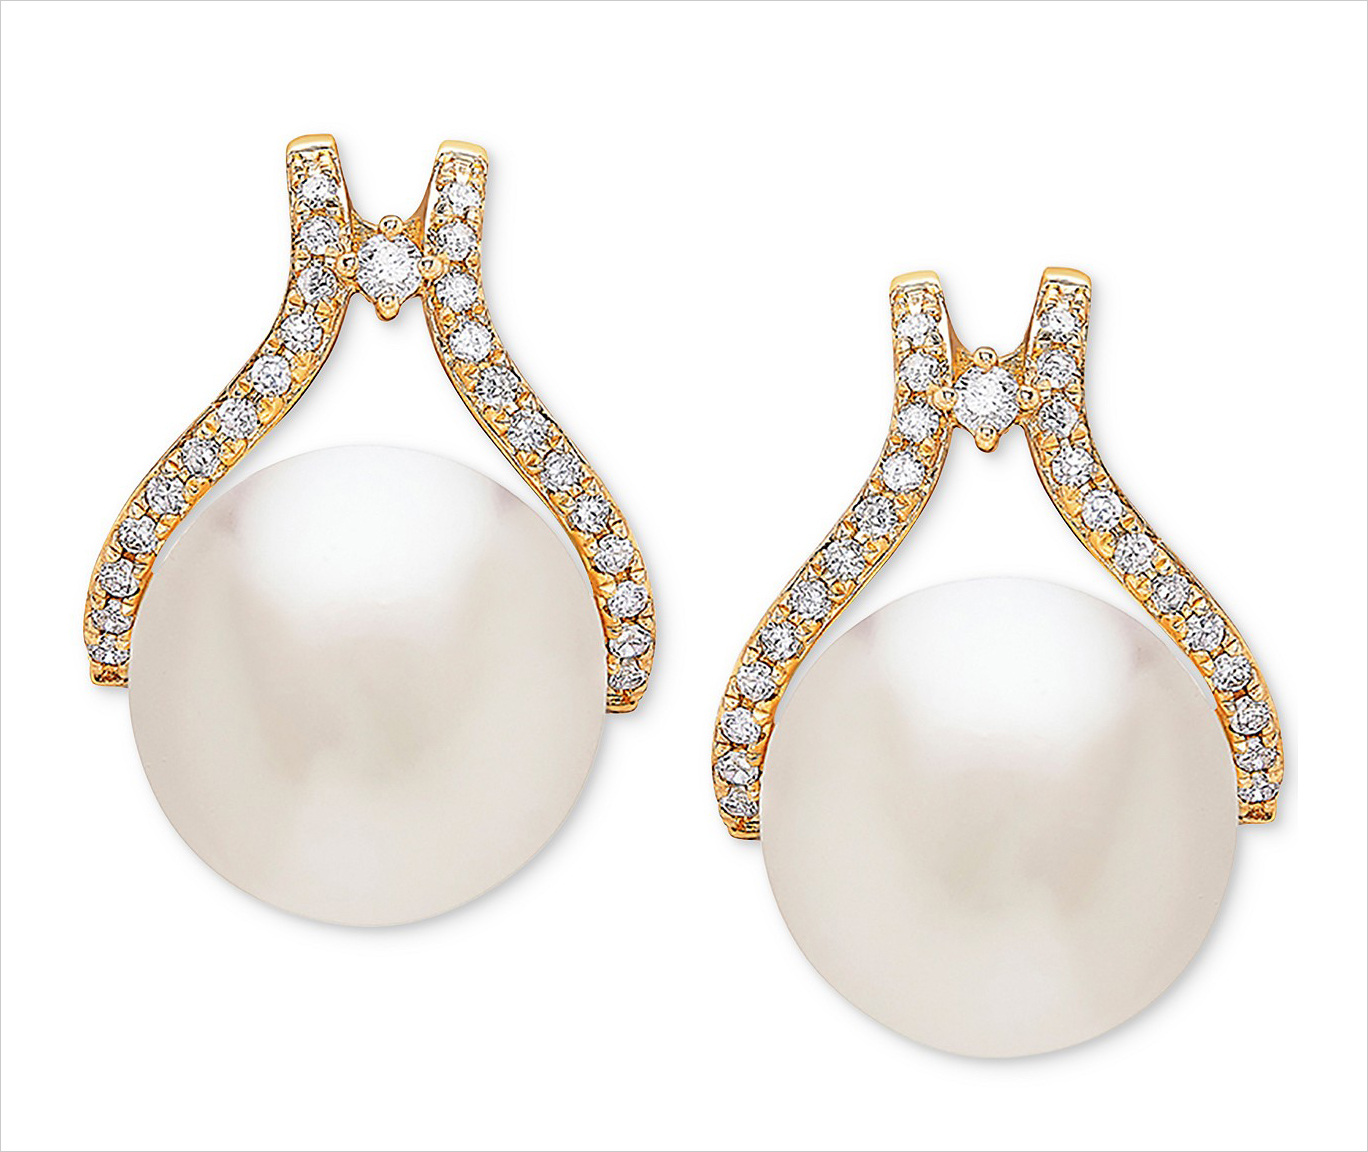 Macy's Arabella pearl and diamond earrings 4th fourth of july sales for brides